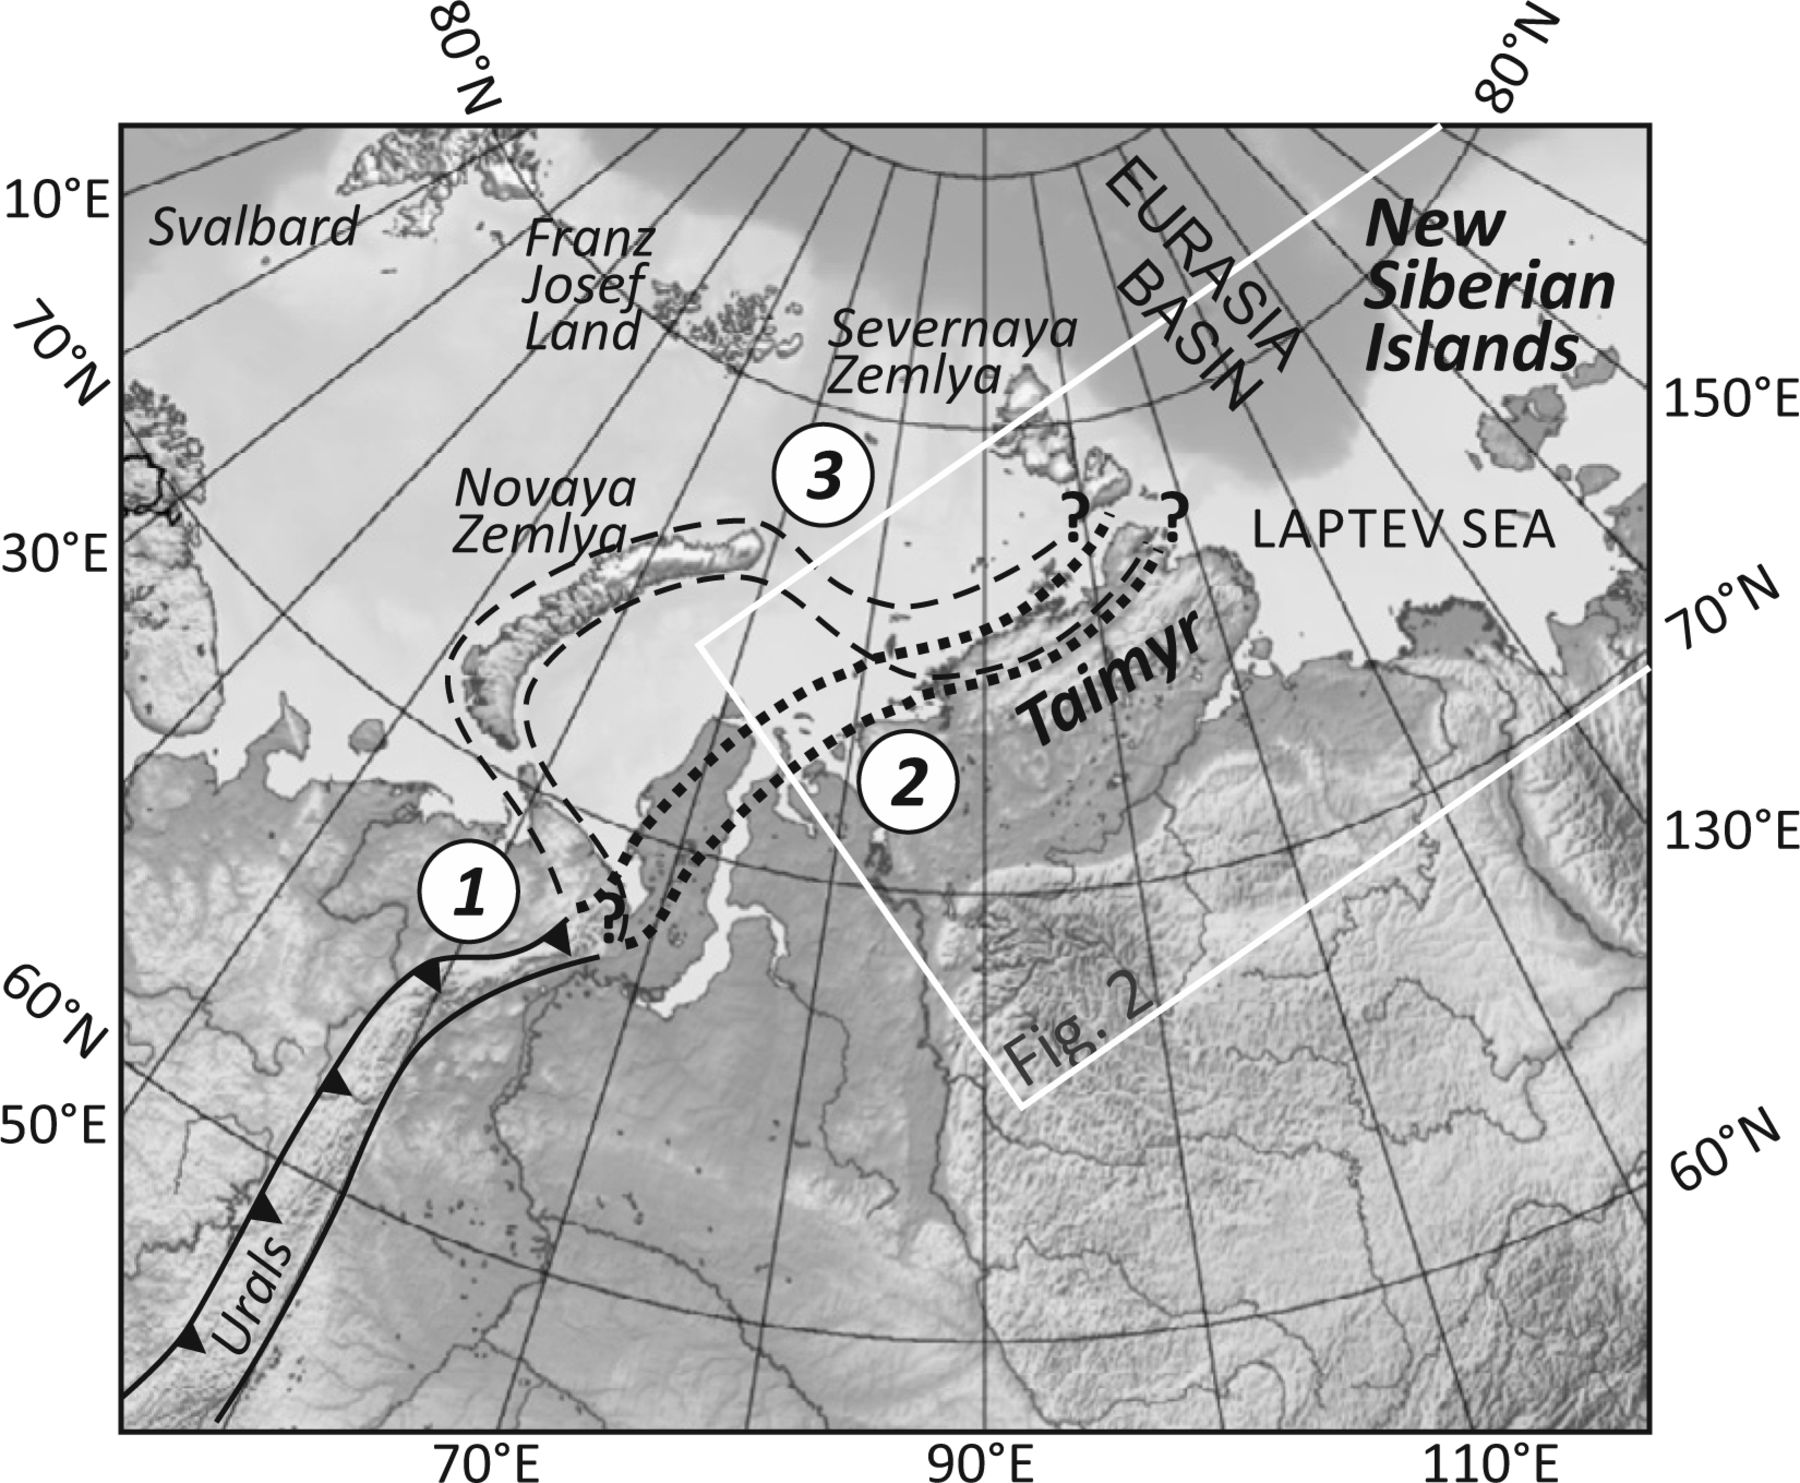 The New Siberian Islands and evidence for the continuation of the